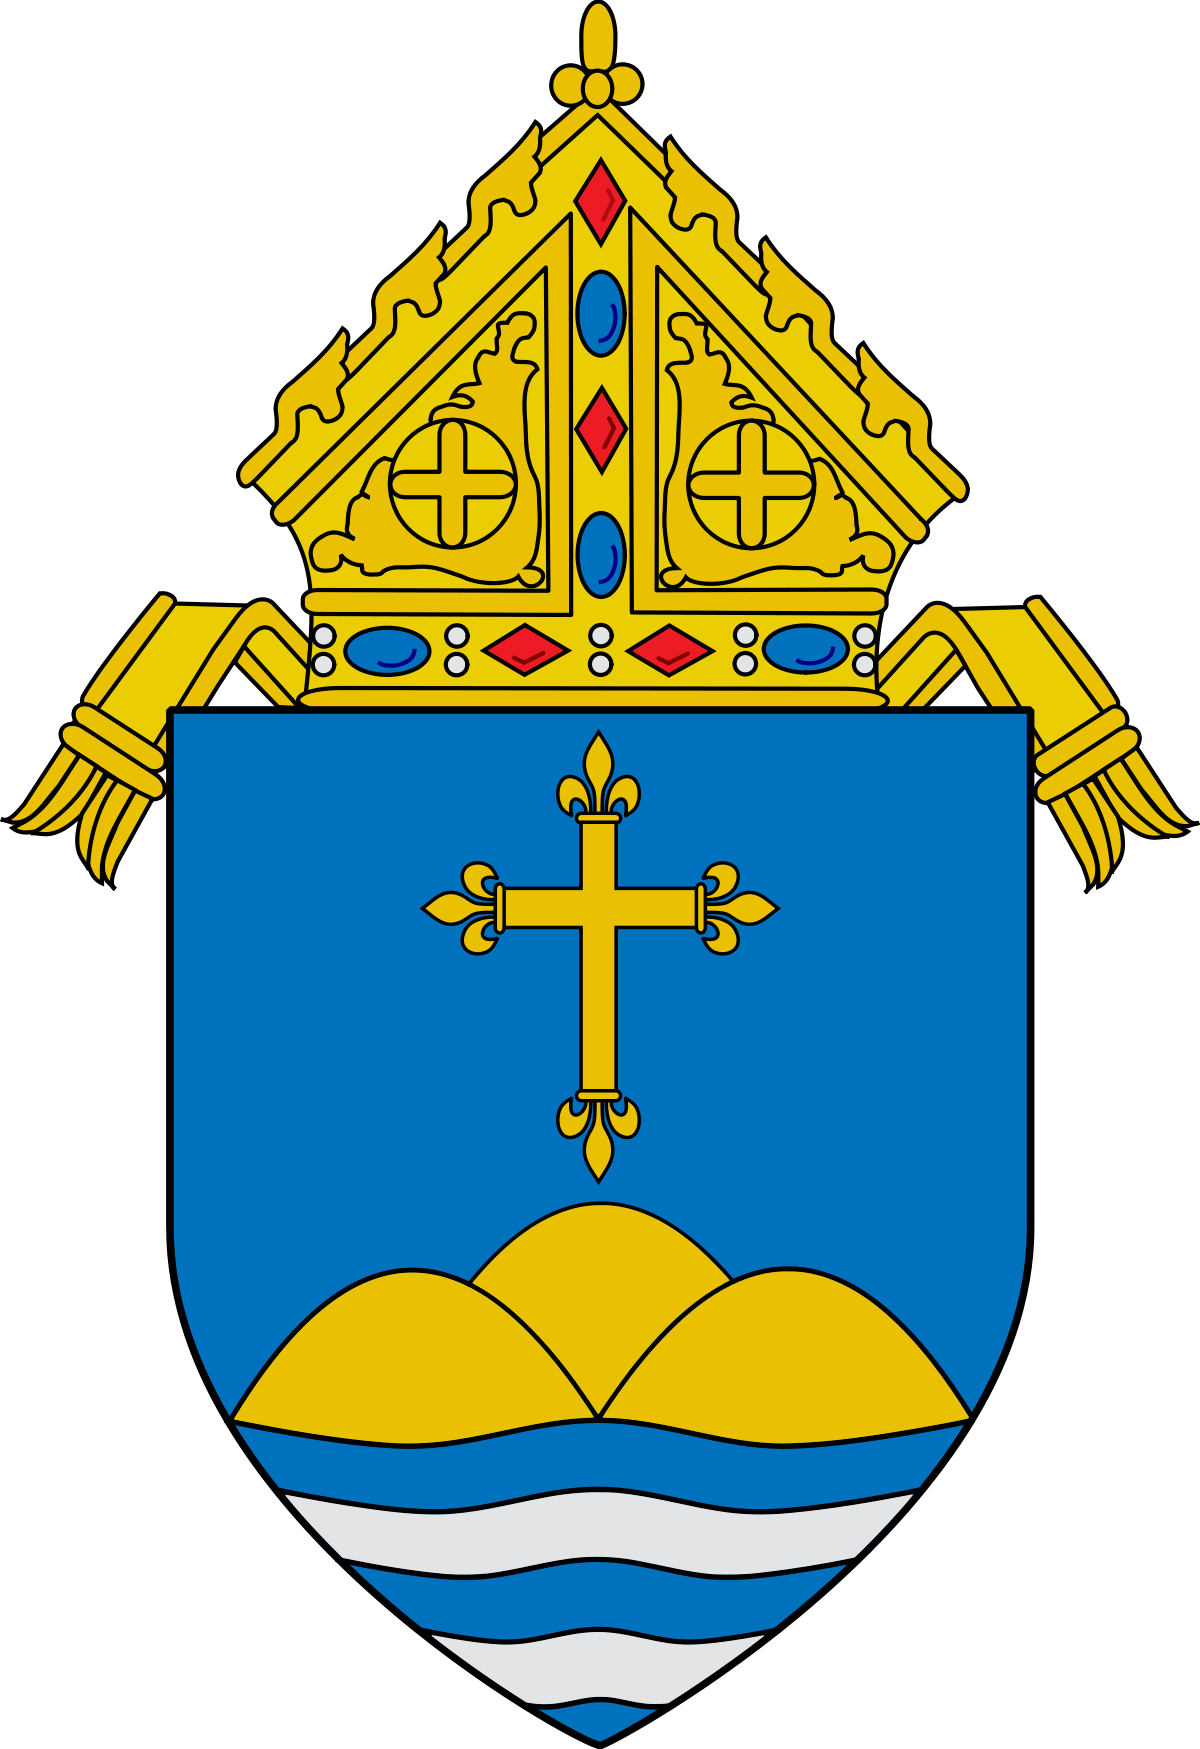 Office of the bishop of new hampshire clipart image free stock Roman Catholic Archdiocese of Boston - Wikipedia image free stock